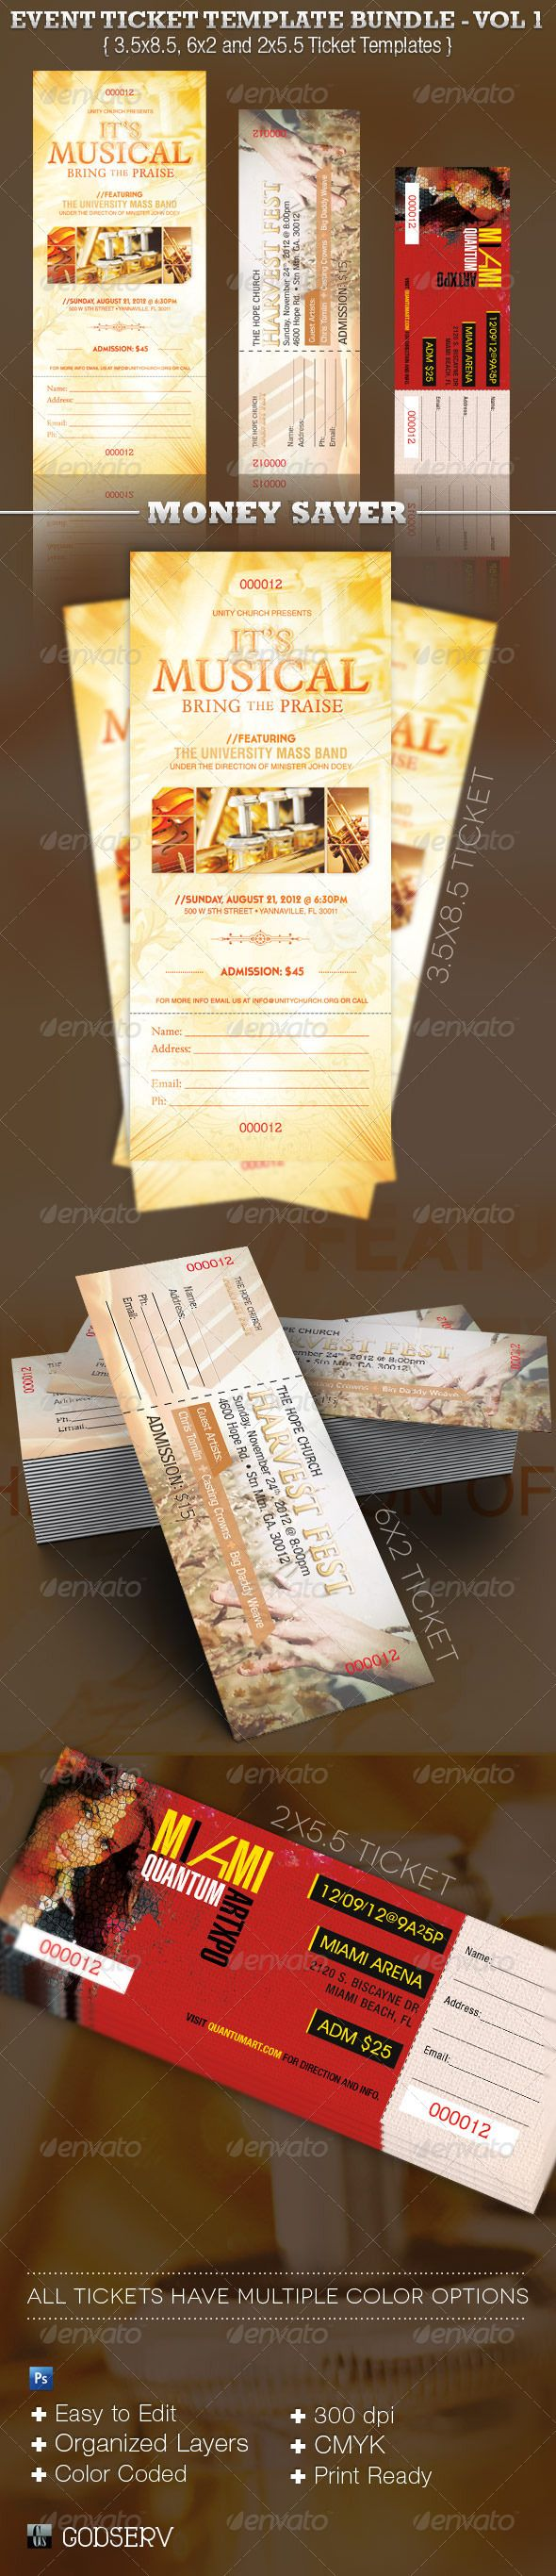 Event #Ticket Template Bundle Vol 1   Miscellaneous Print Templates  Download Here: Https:  Print Tickets Free Template